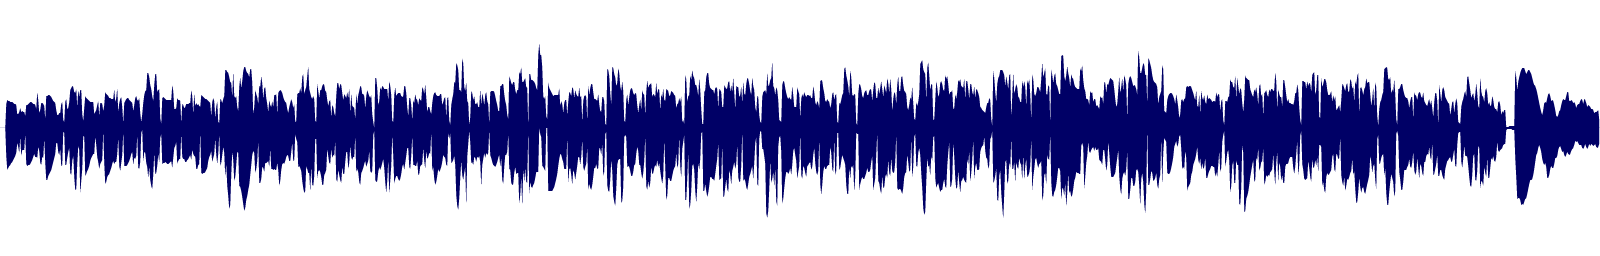 waveform of track #89631